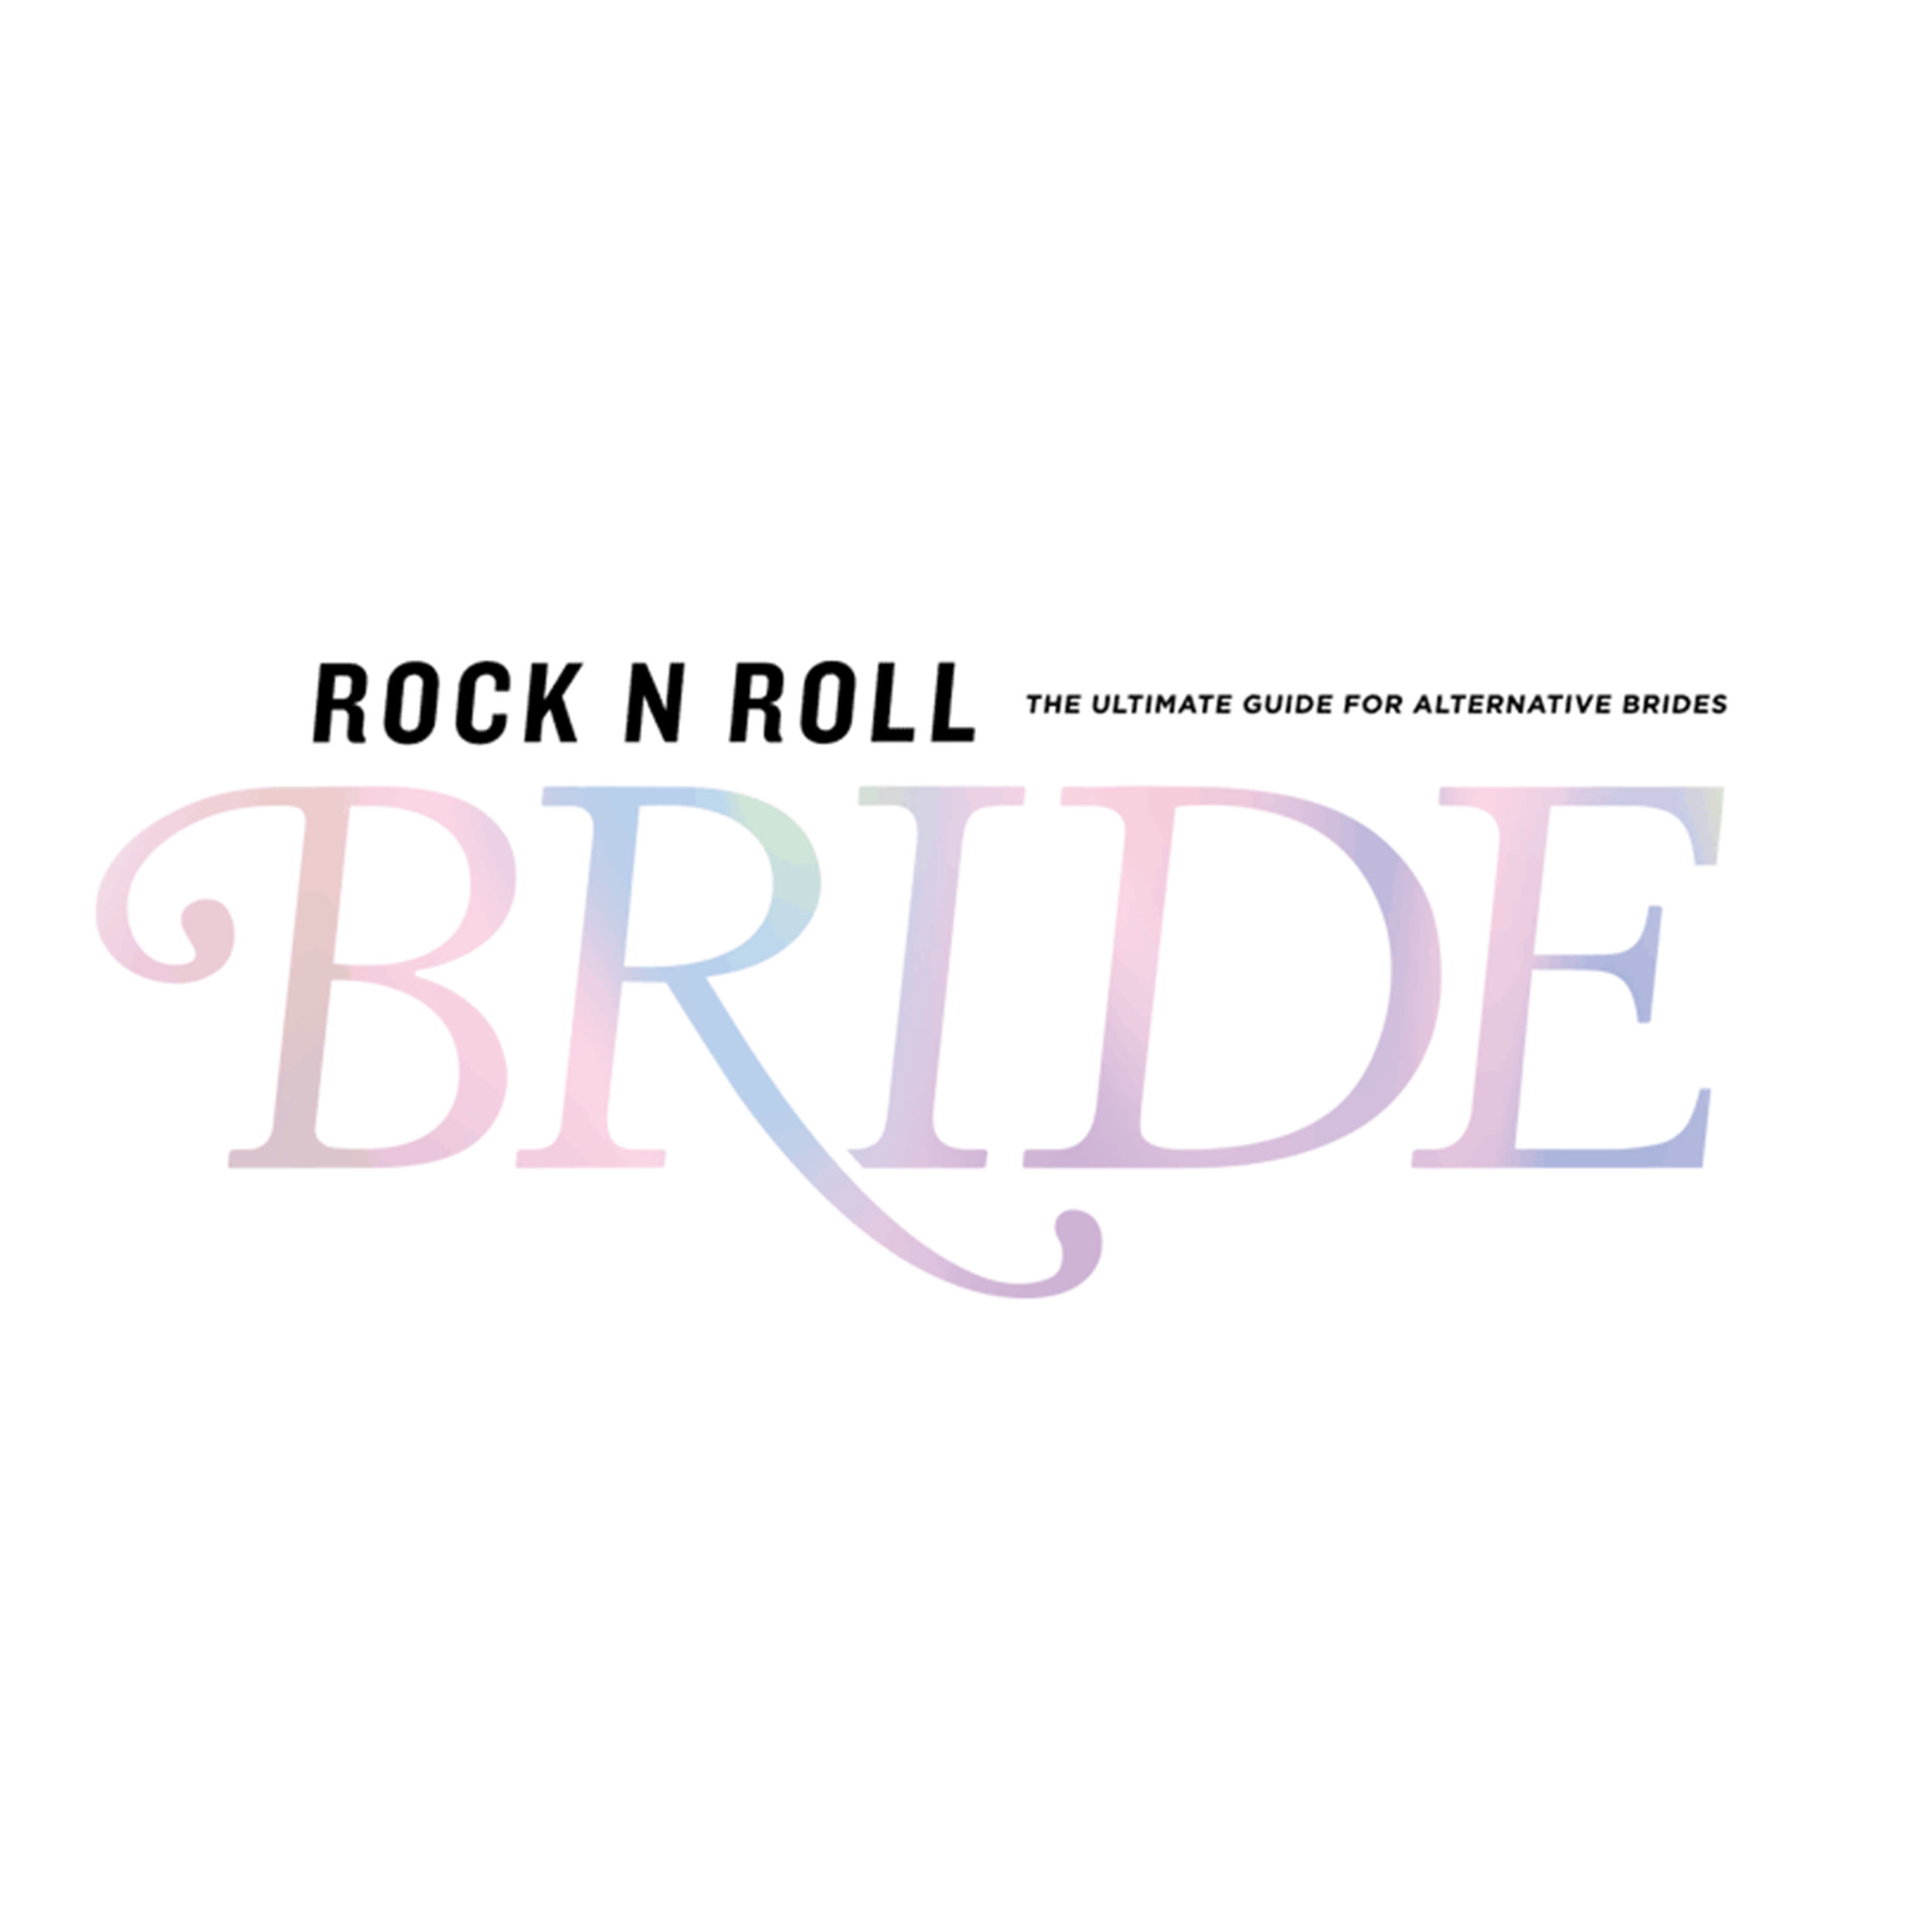 CARPETA-33 - Rock n Roll bride.jpg